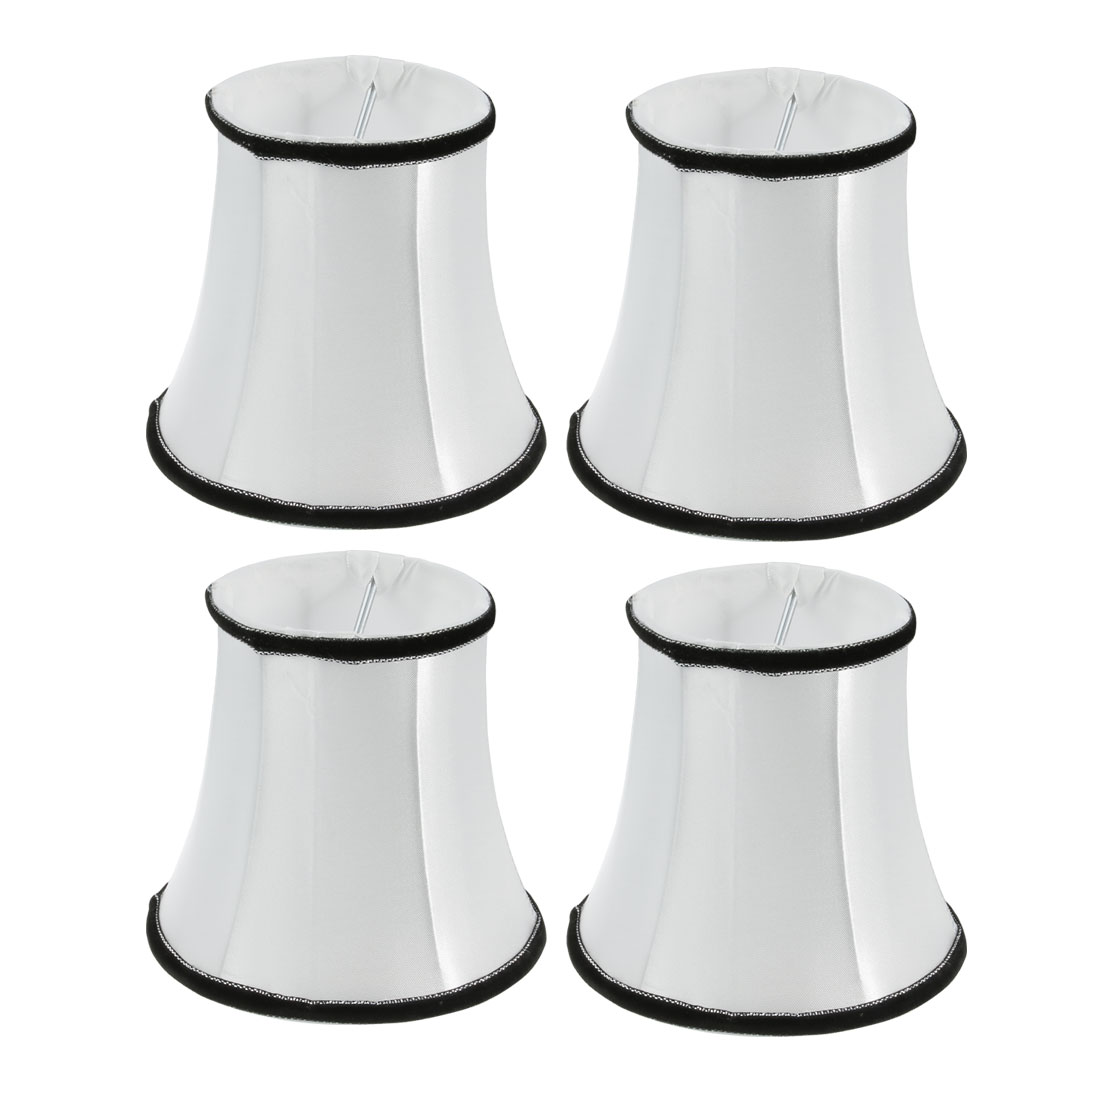 4pcs Light Shade Droplight Wall Lamp Shade White 80mm x 120mm x 110mm